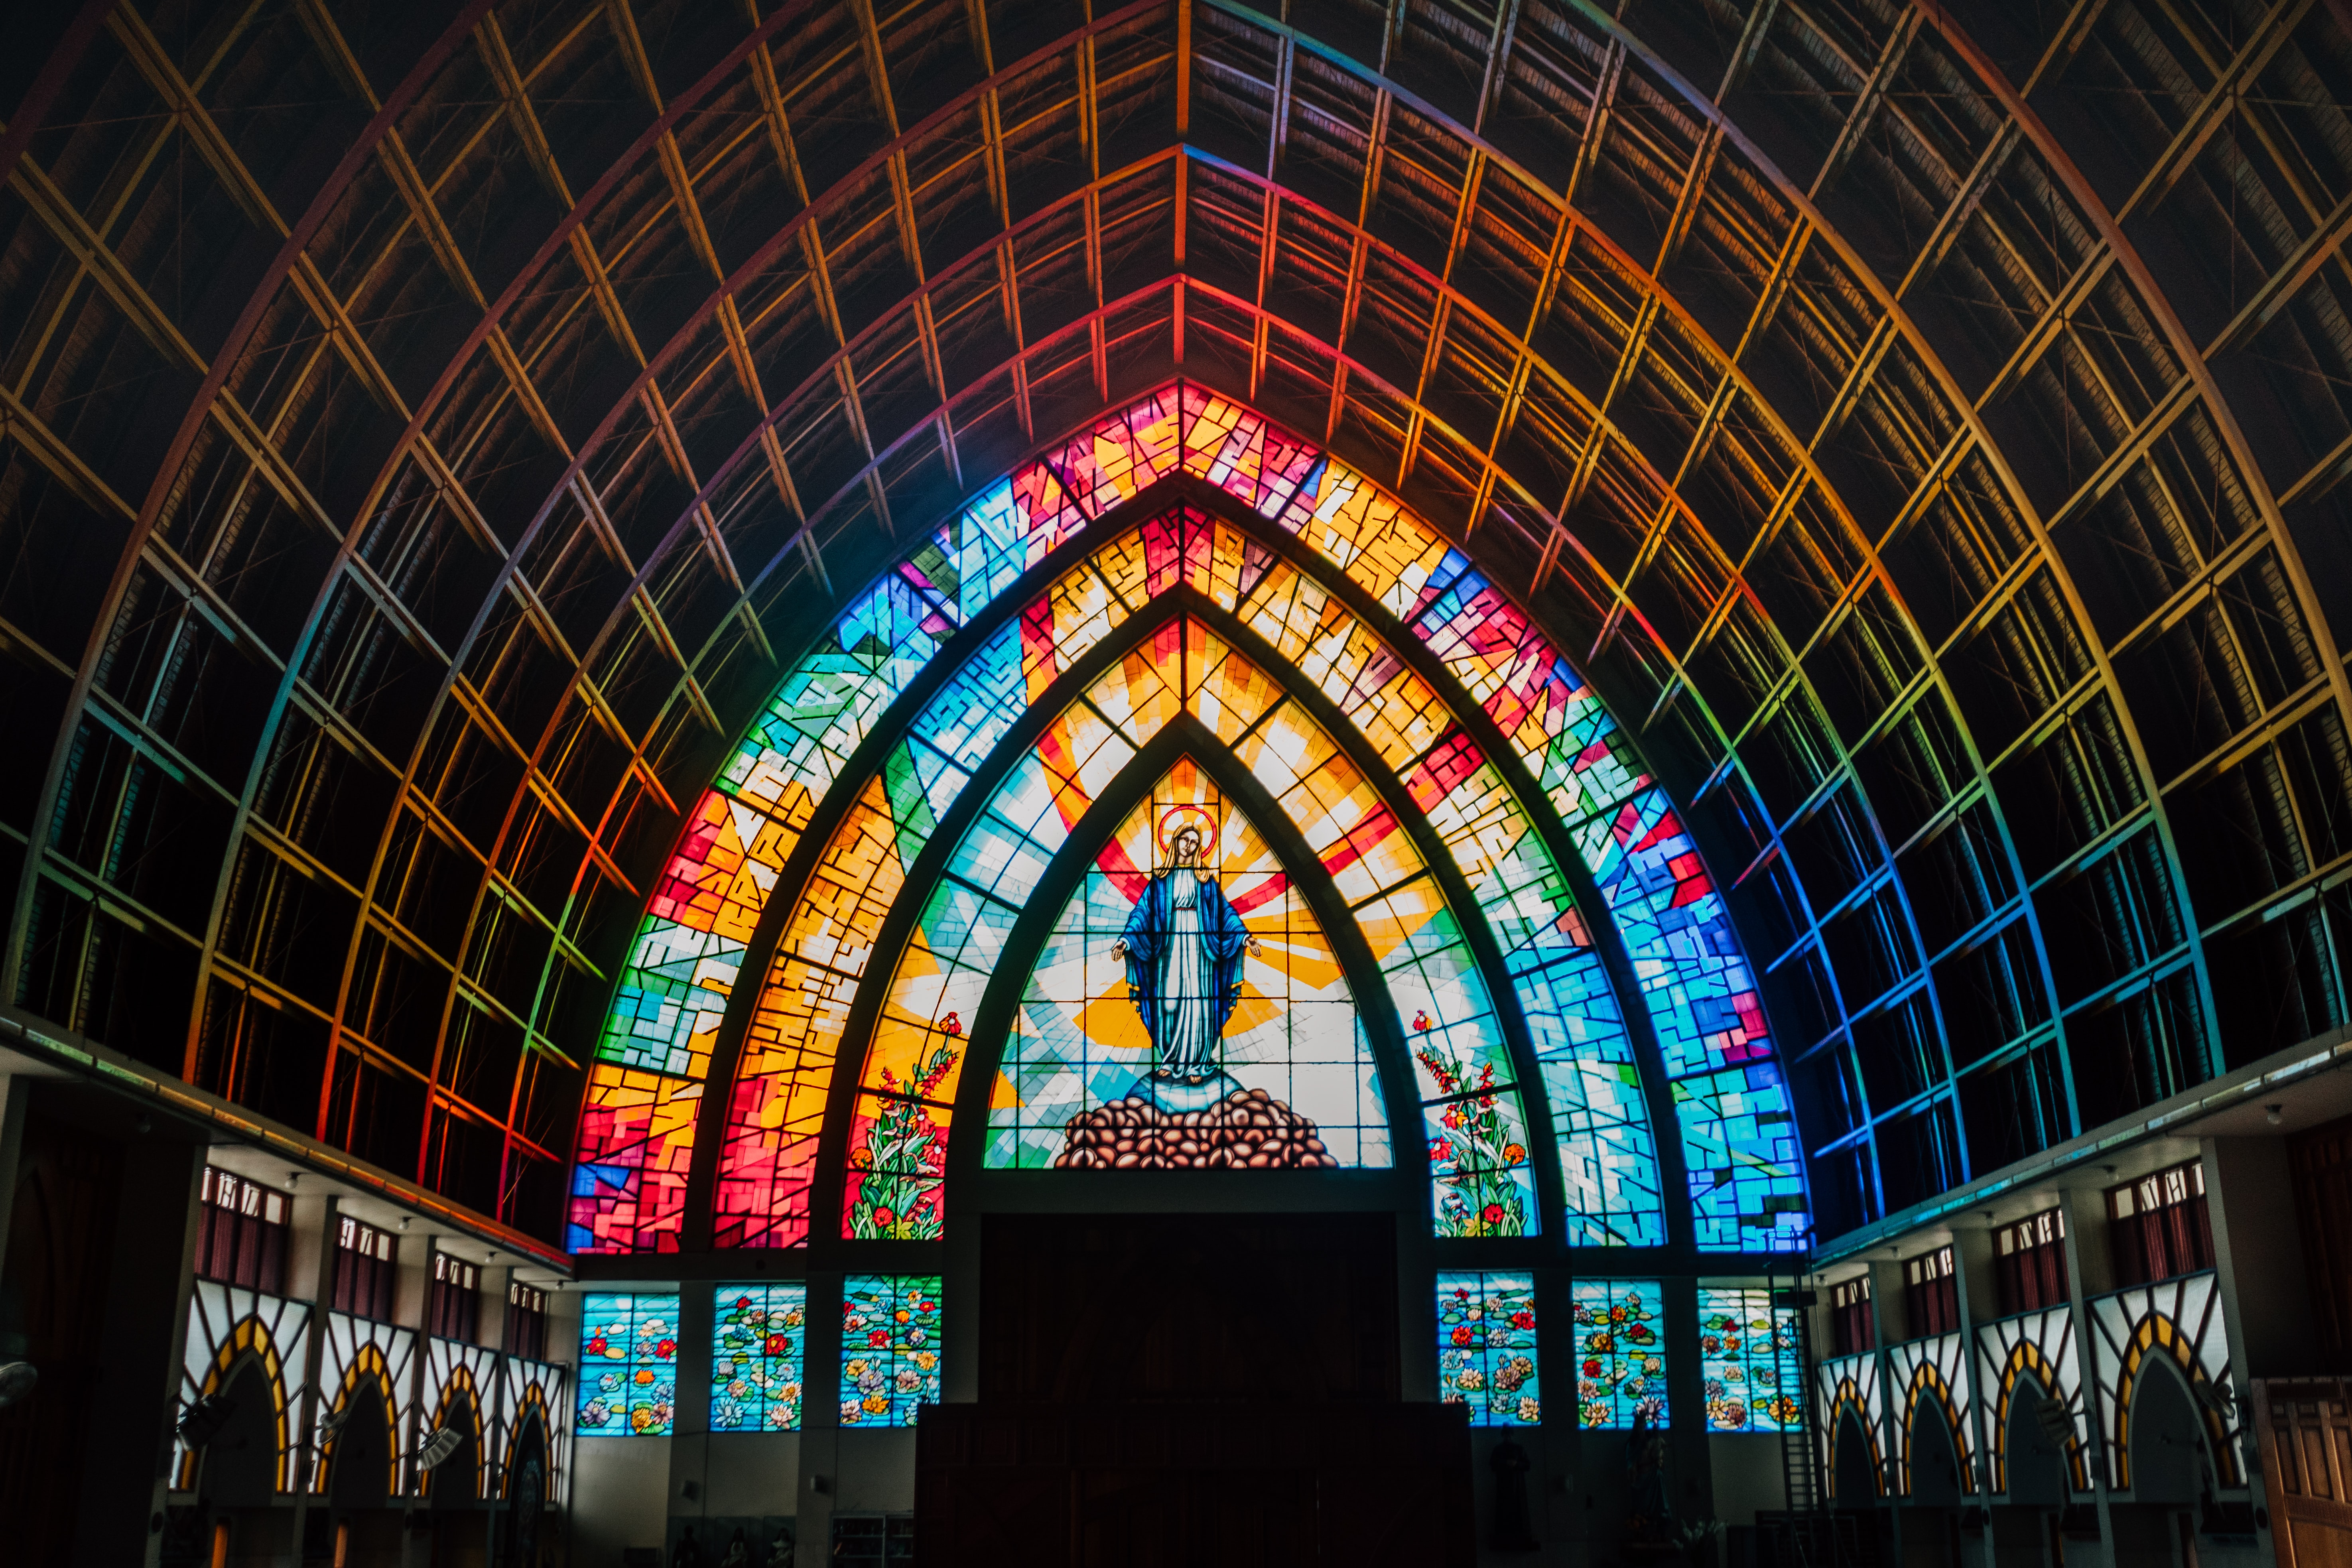 Mother Mary mosaic glass window cathedral interior